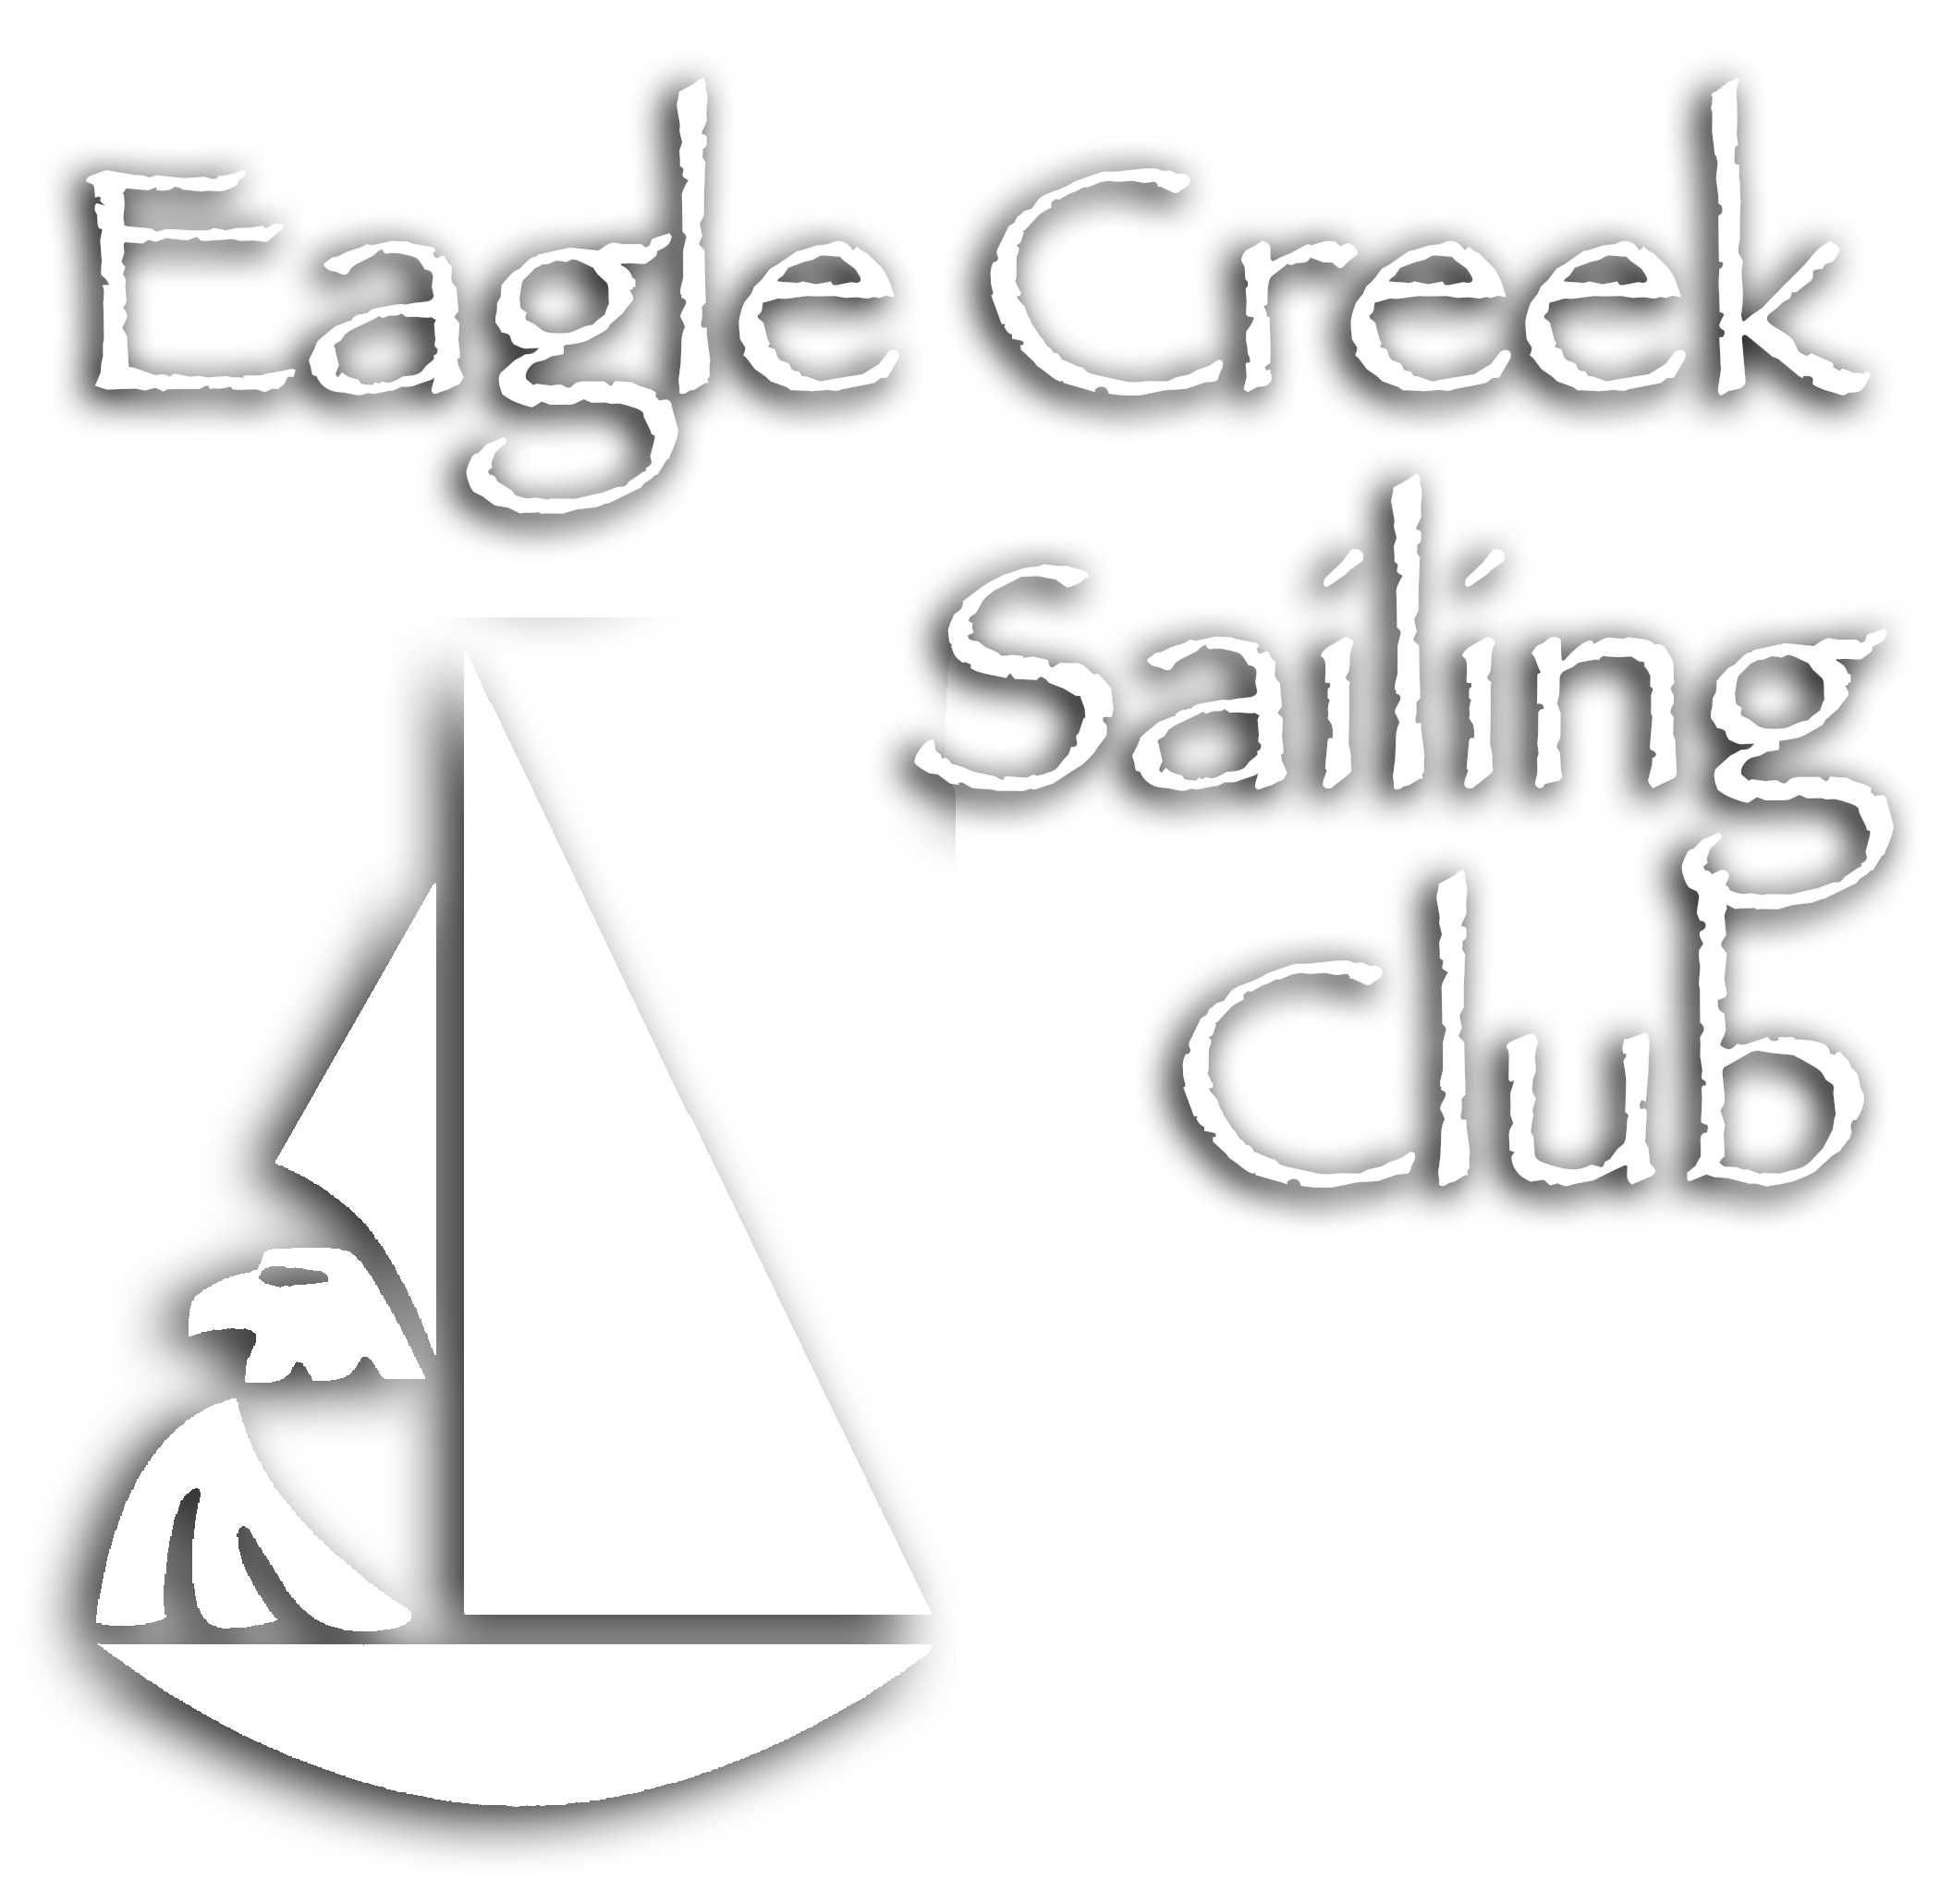 Eagle Creek Sailing Club